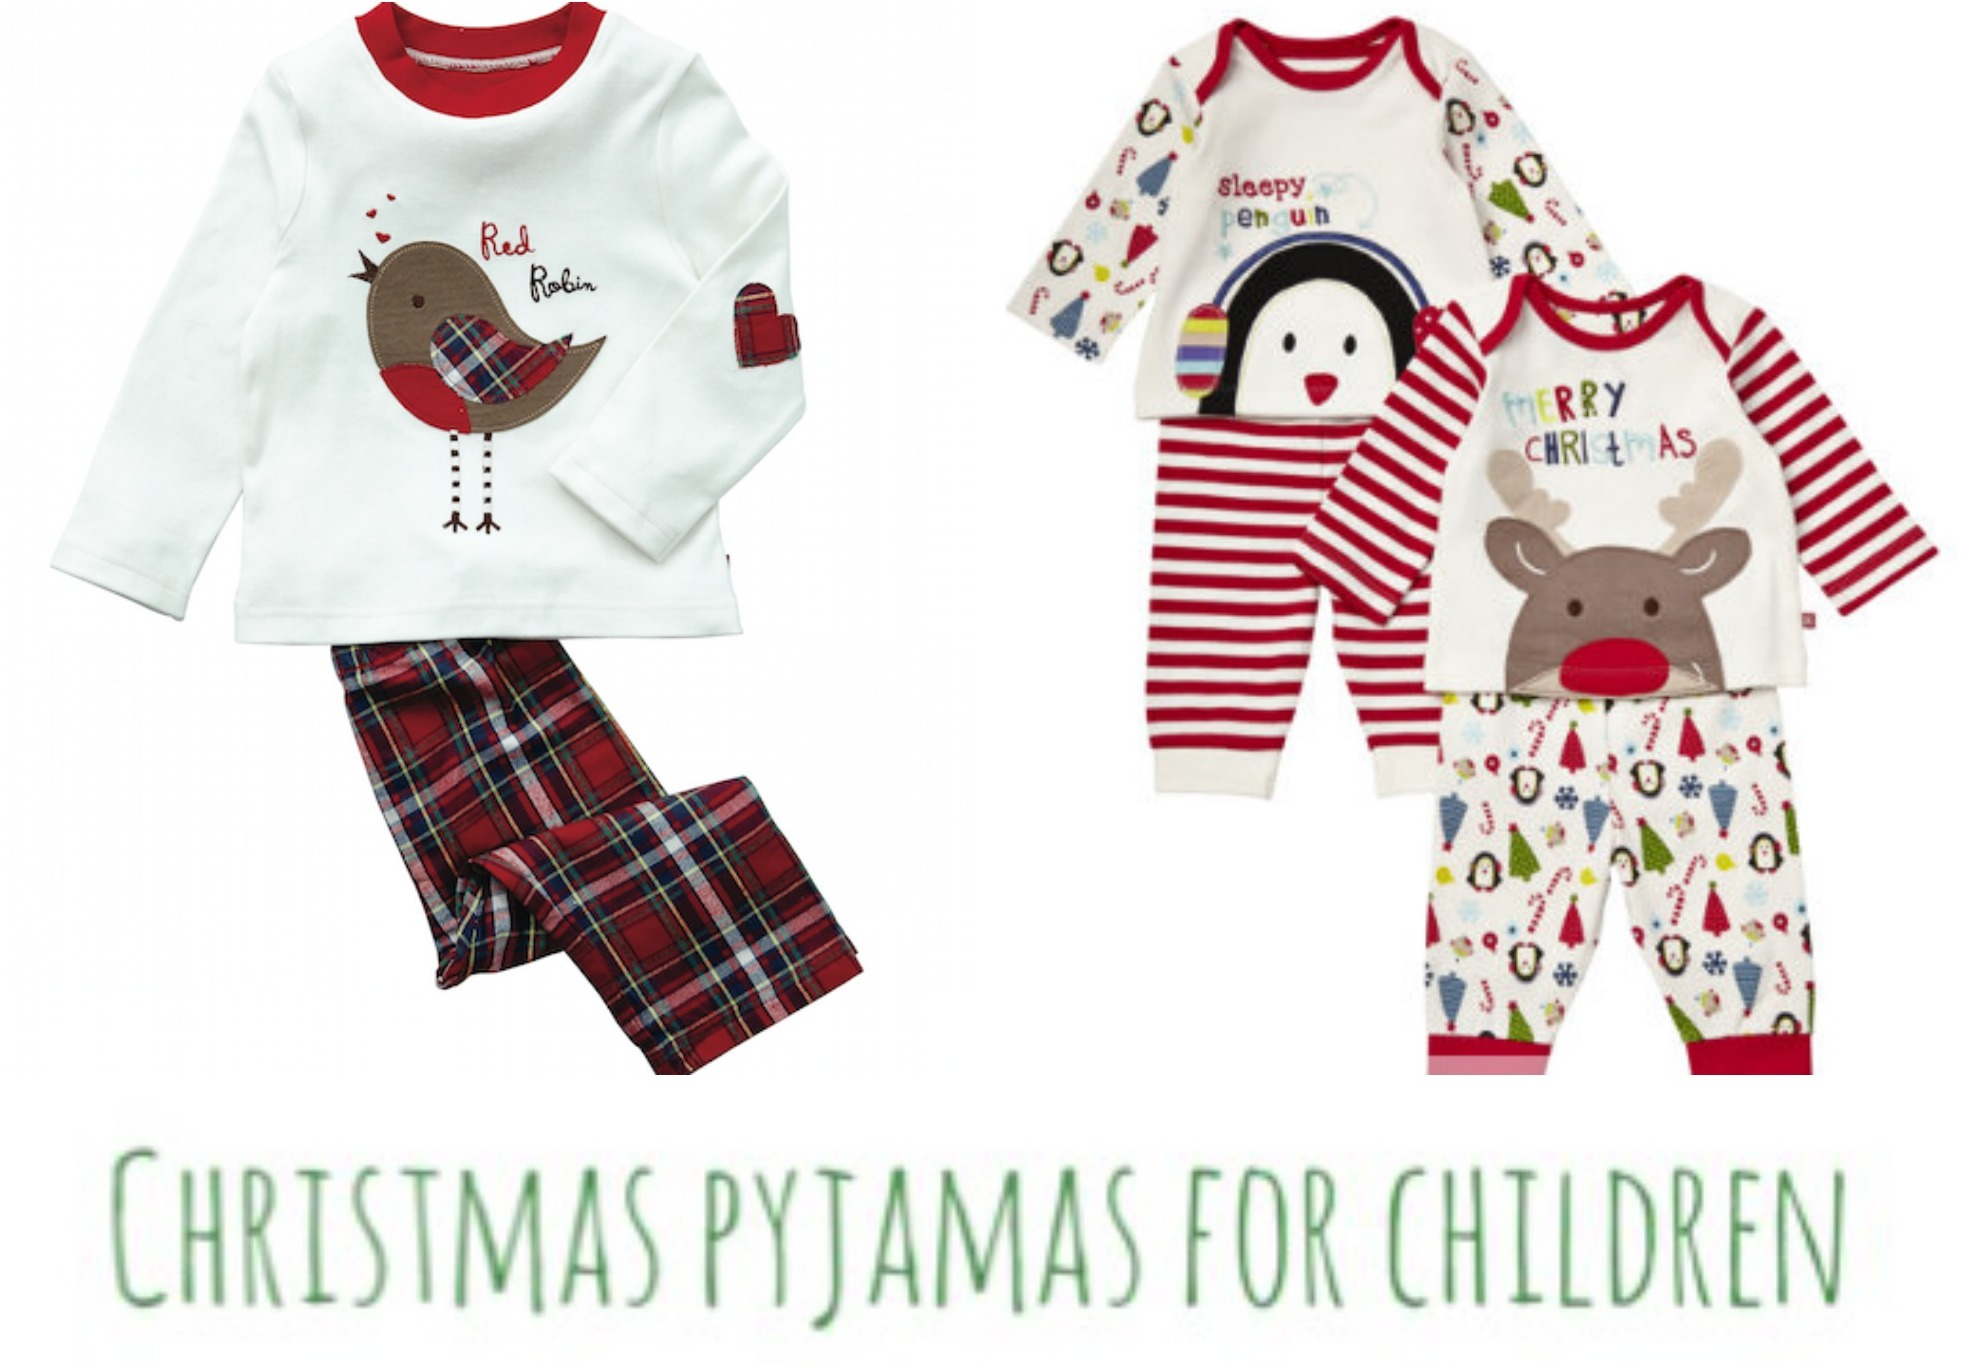 Christmas pyjamas for children | A Baby on Board blog